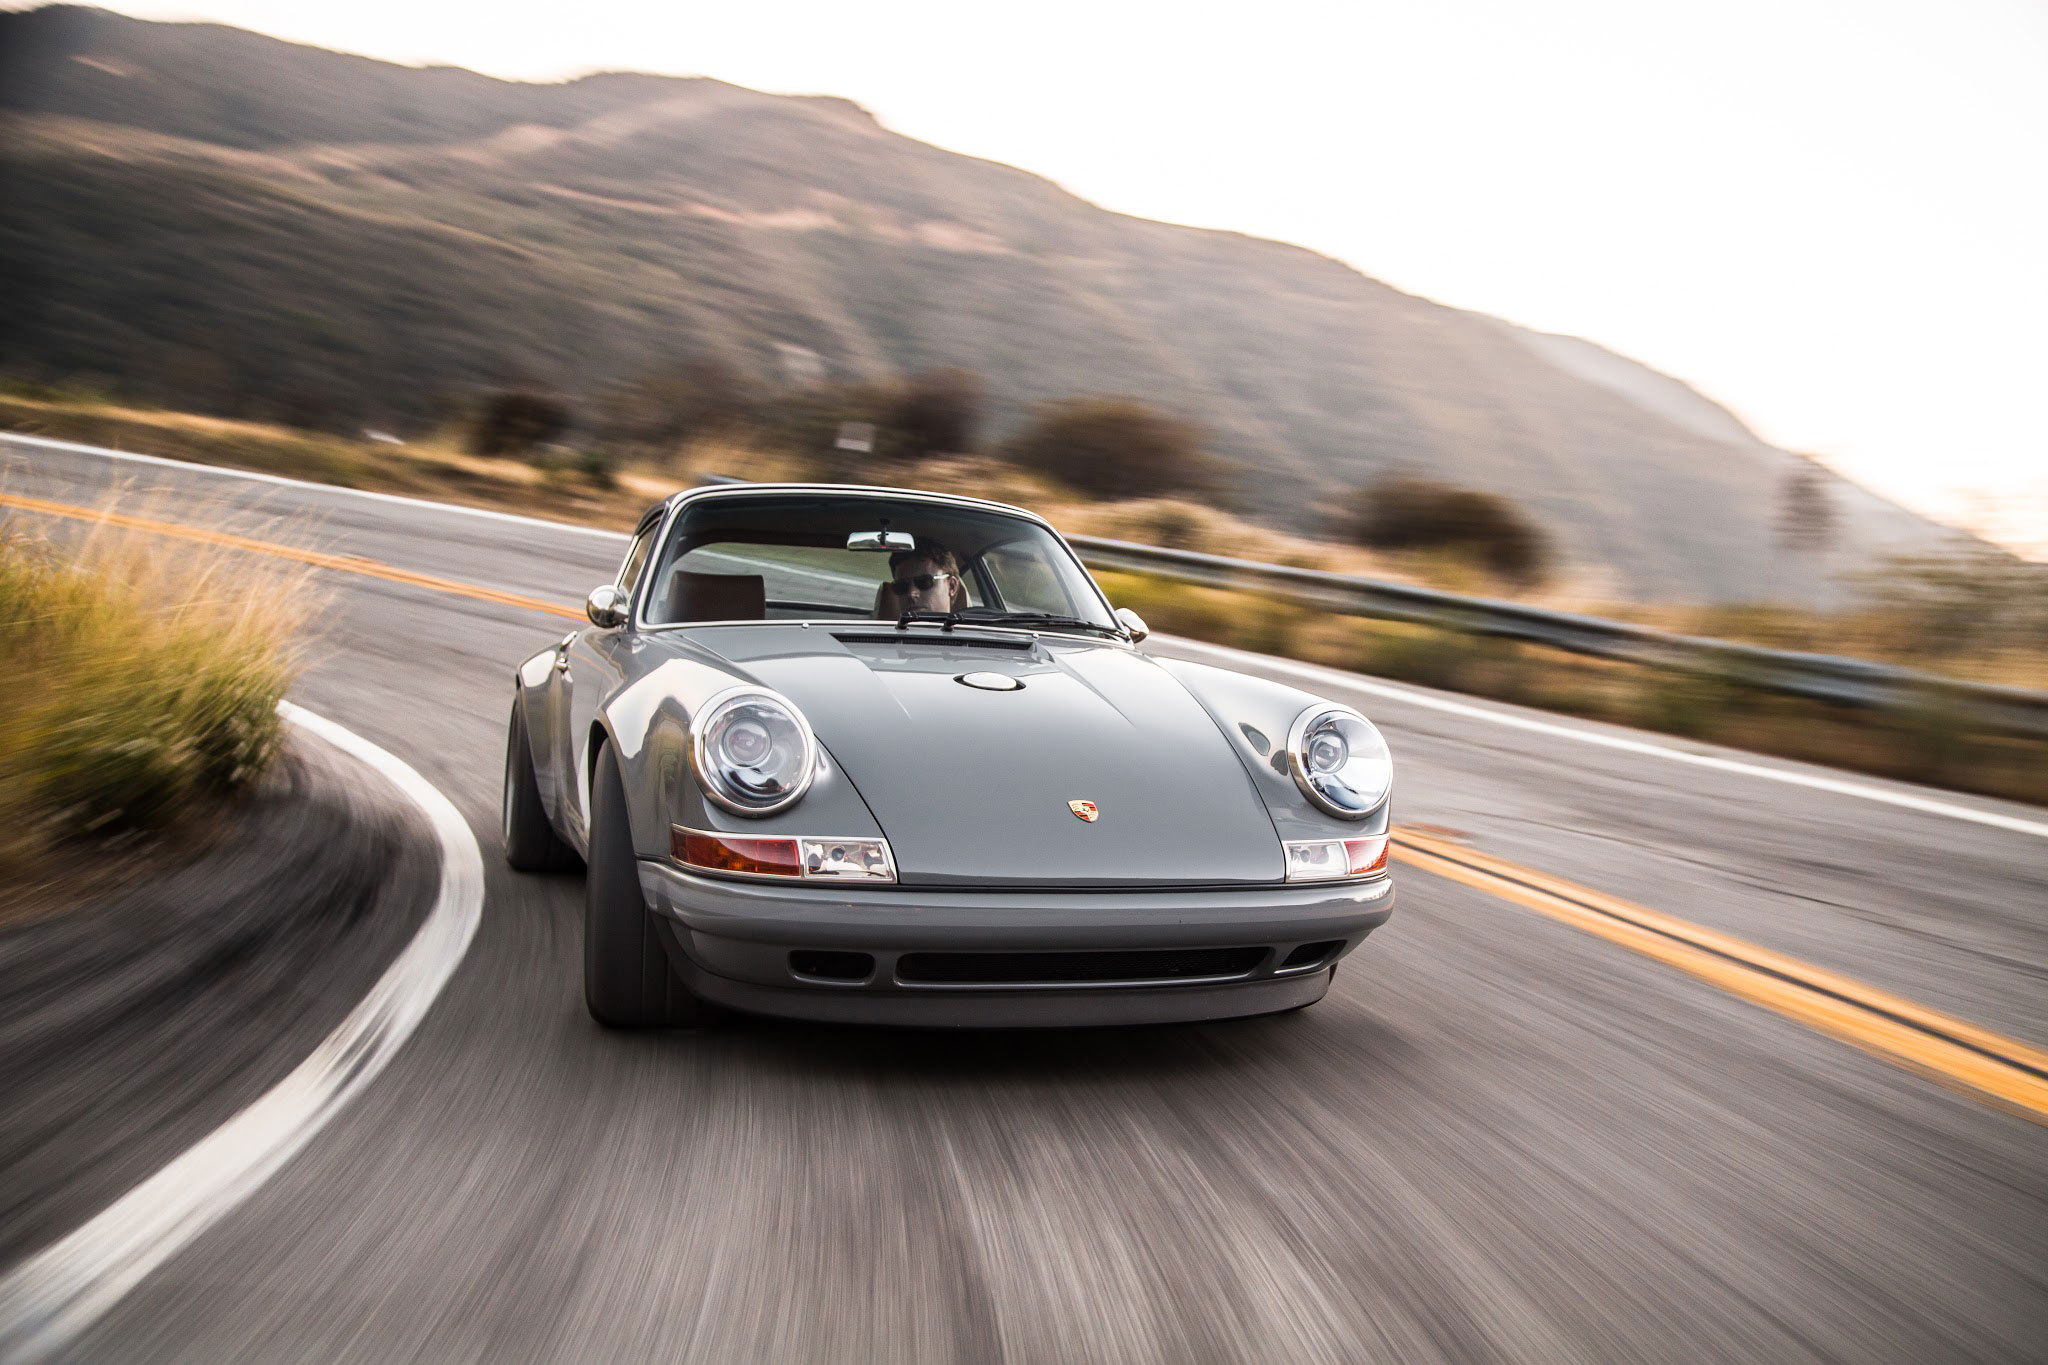 driving the 1990 porsche 911 reimagined by singer vehicle design